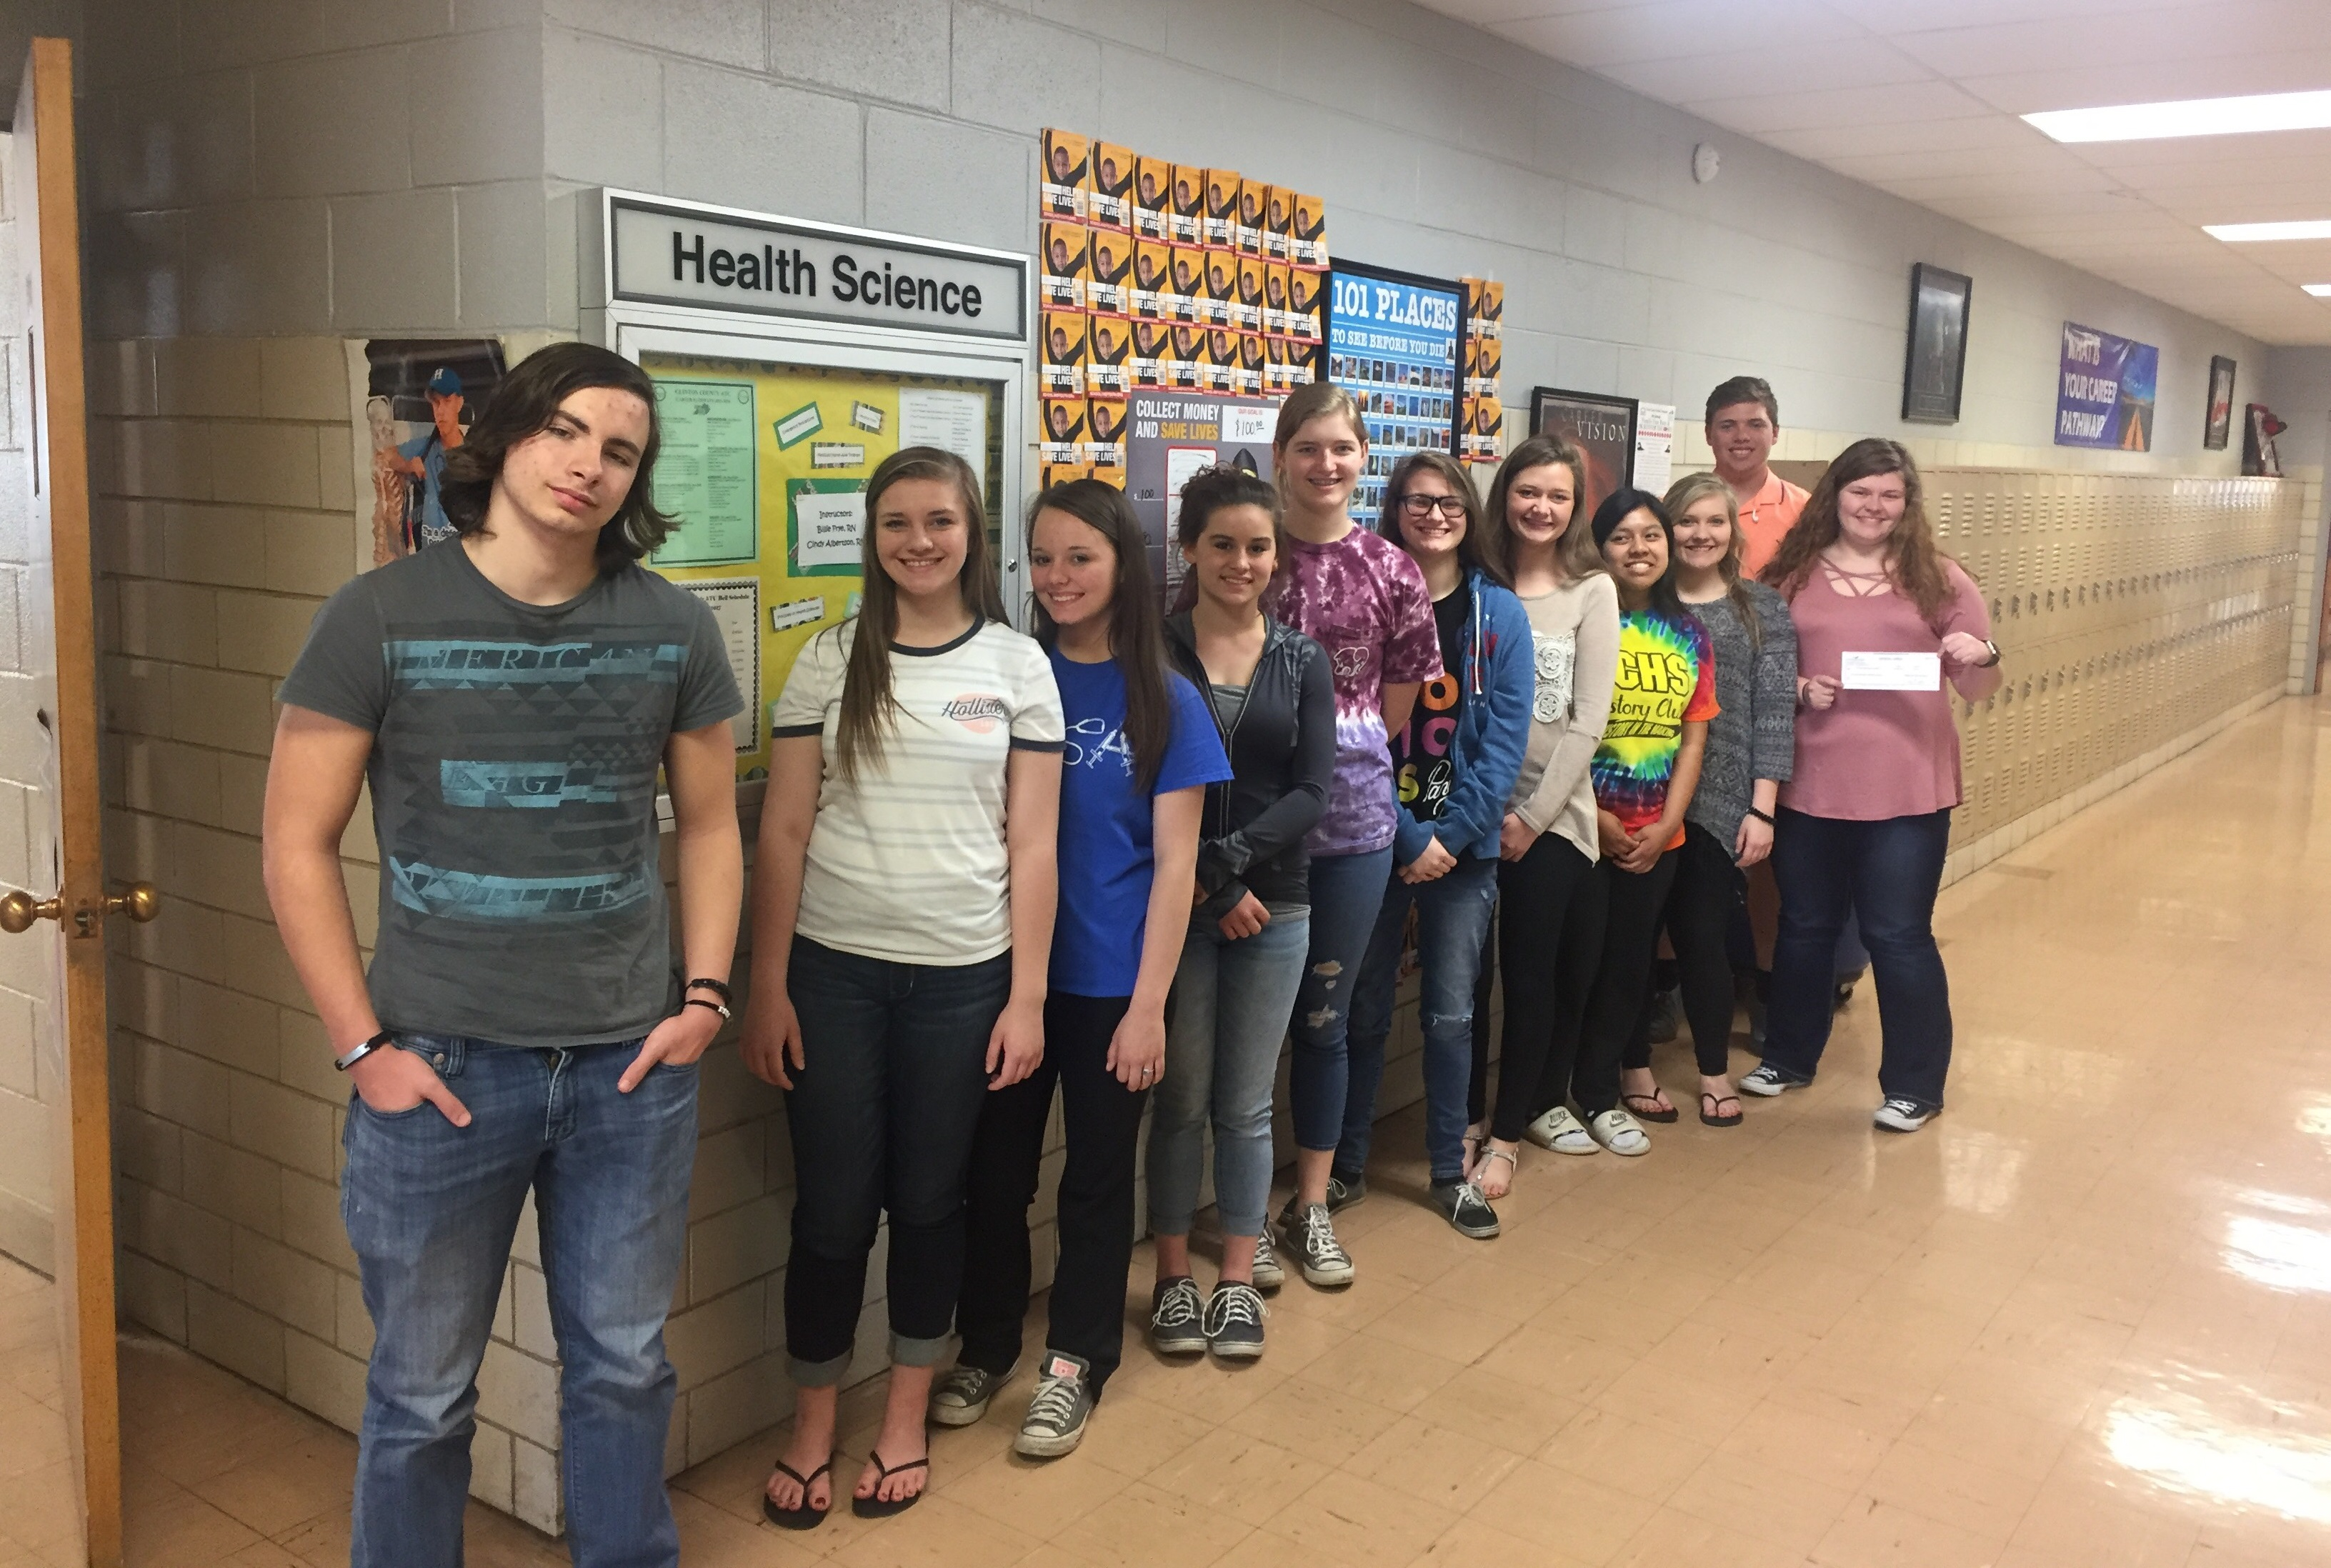 Clinton County Area Technology Center HOSA, FBLA, and SKILLS USA students raised $117.00 during the annual Pennies for Patients fundraiser.